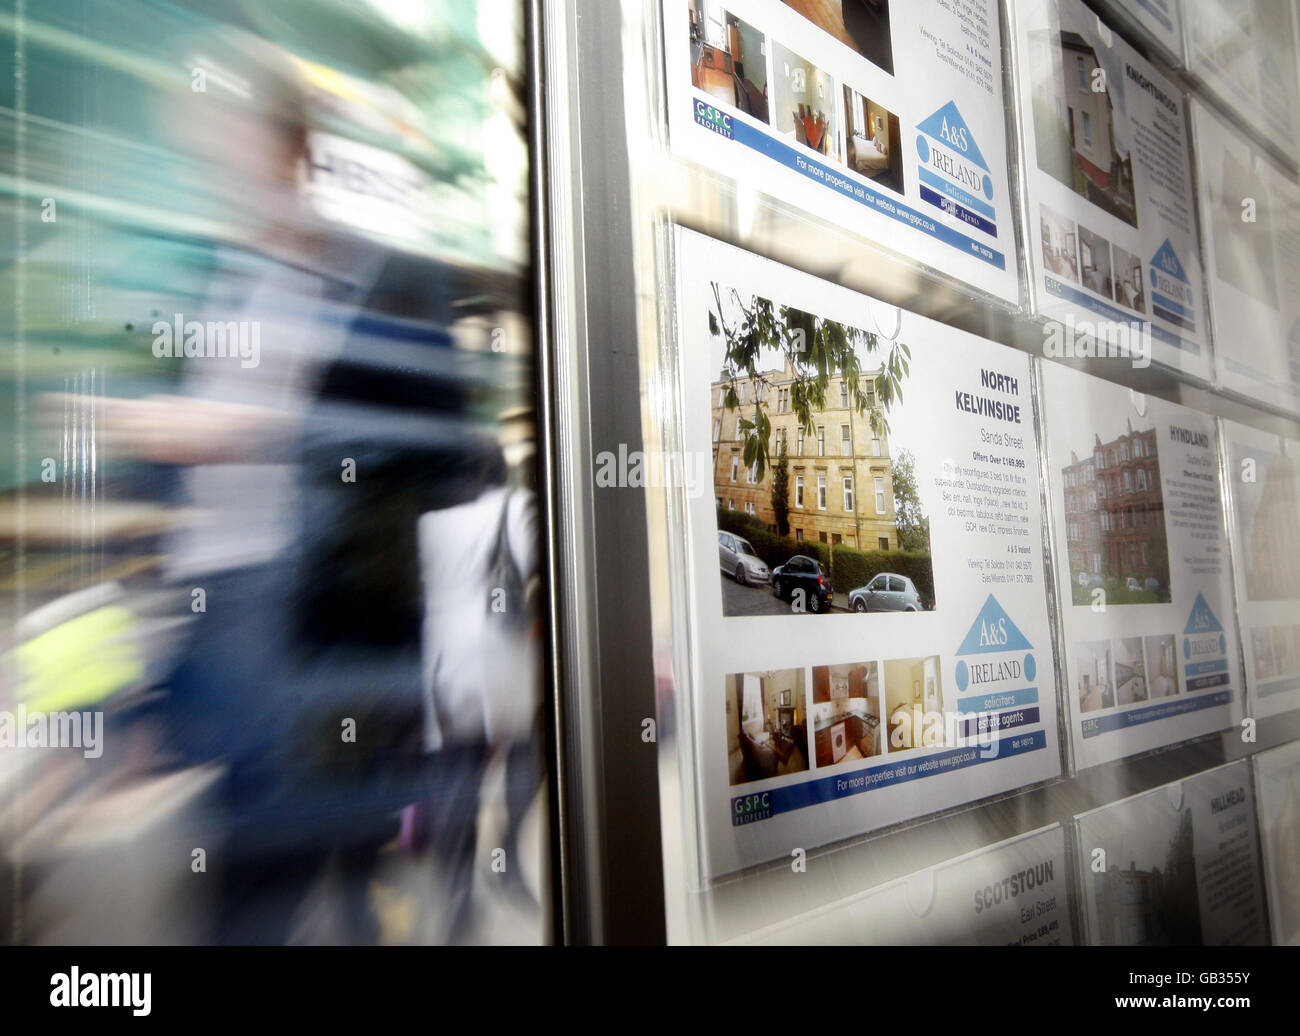 Government seeks to revive housing market - Stock Image